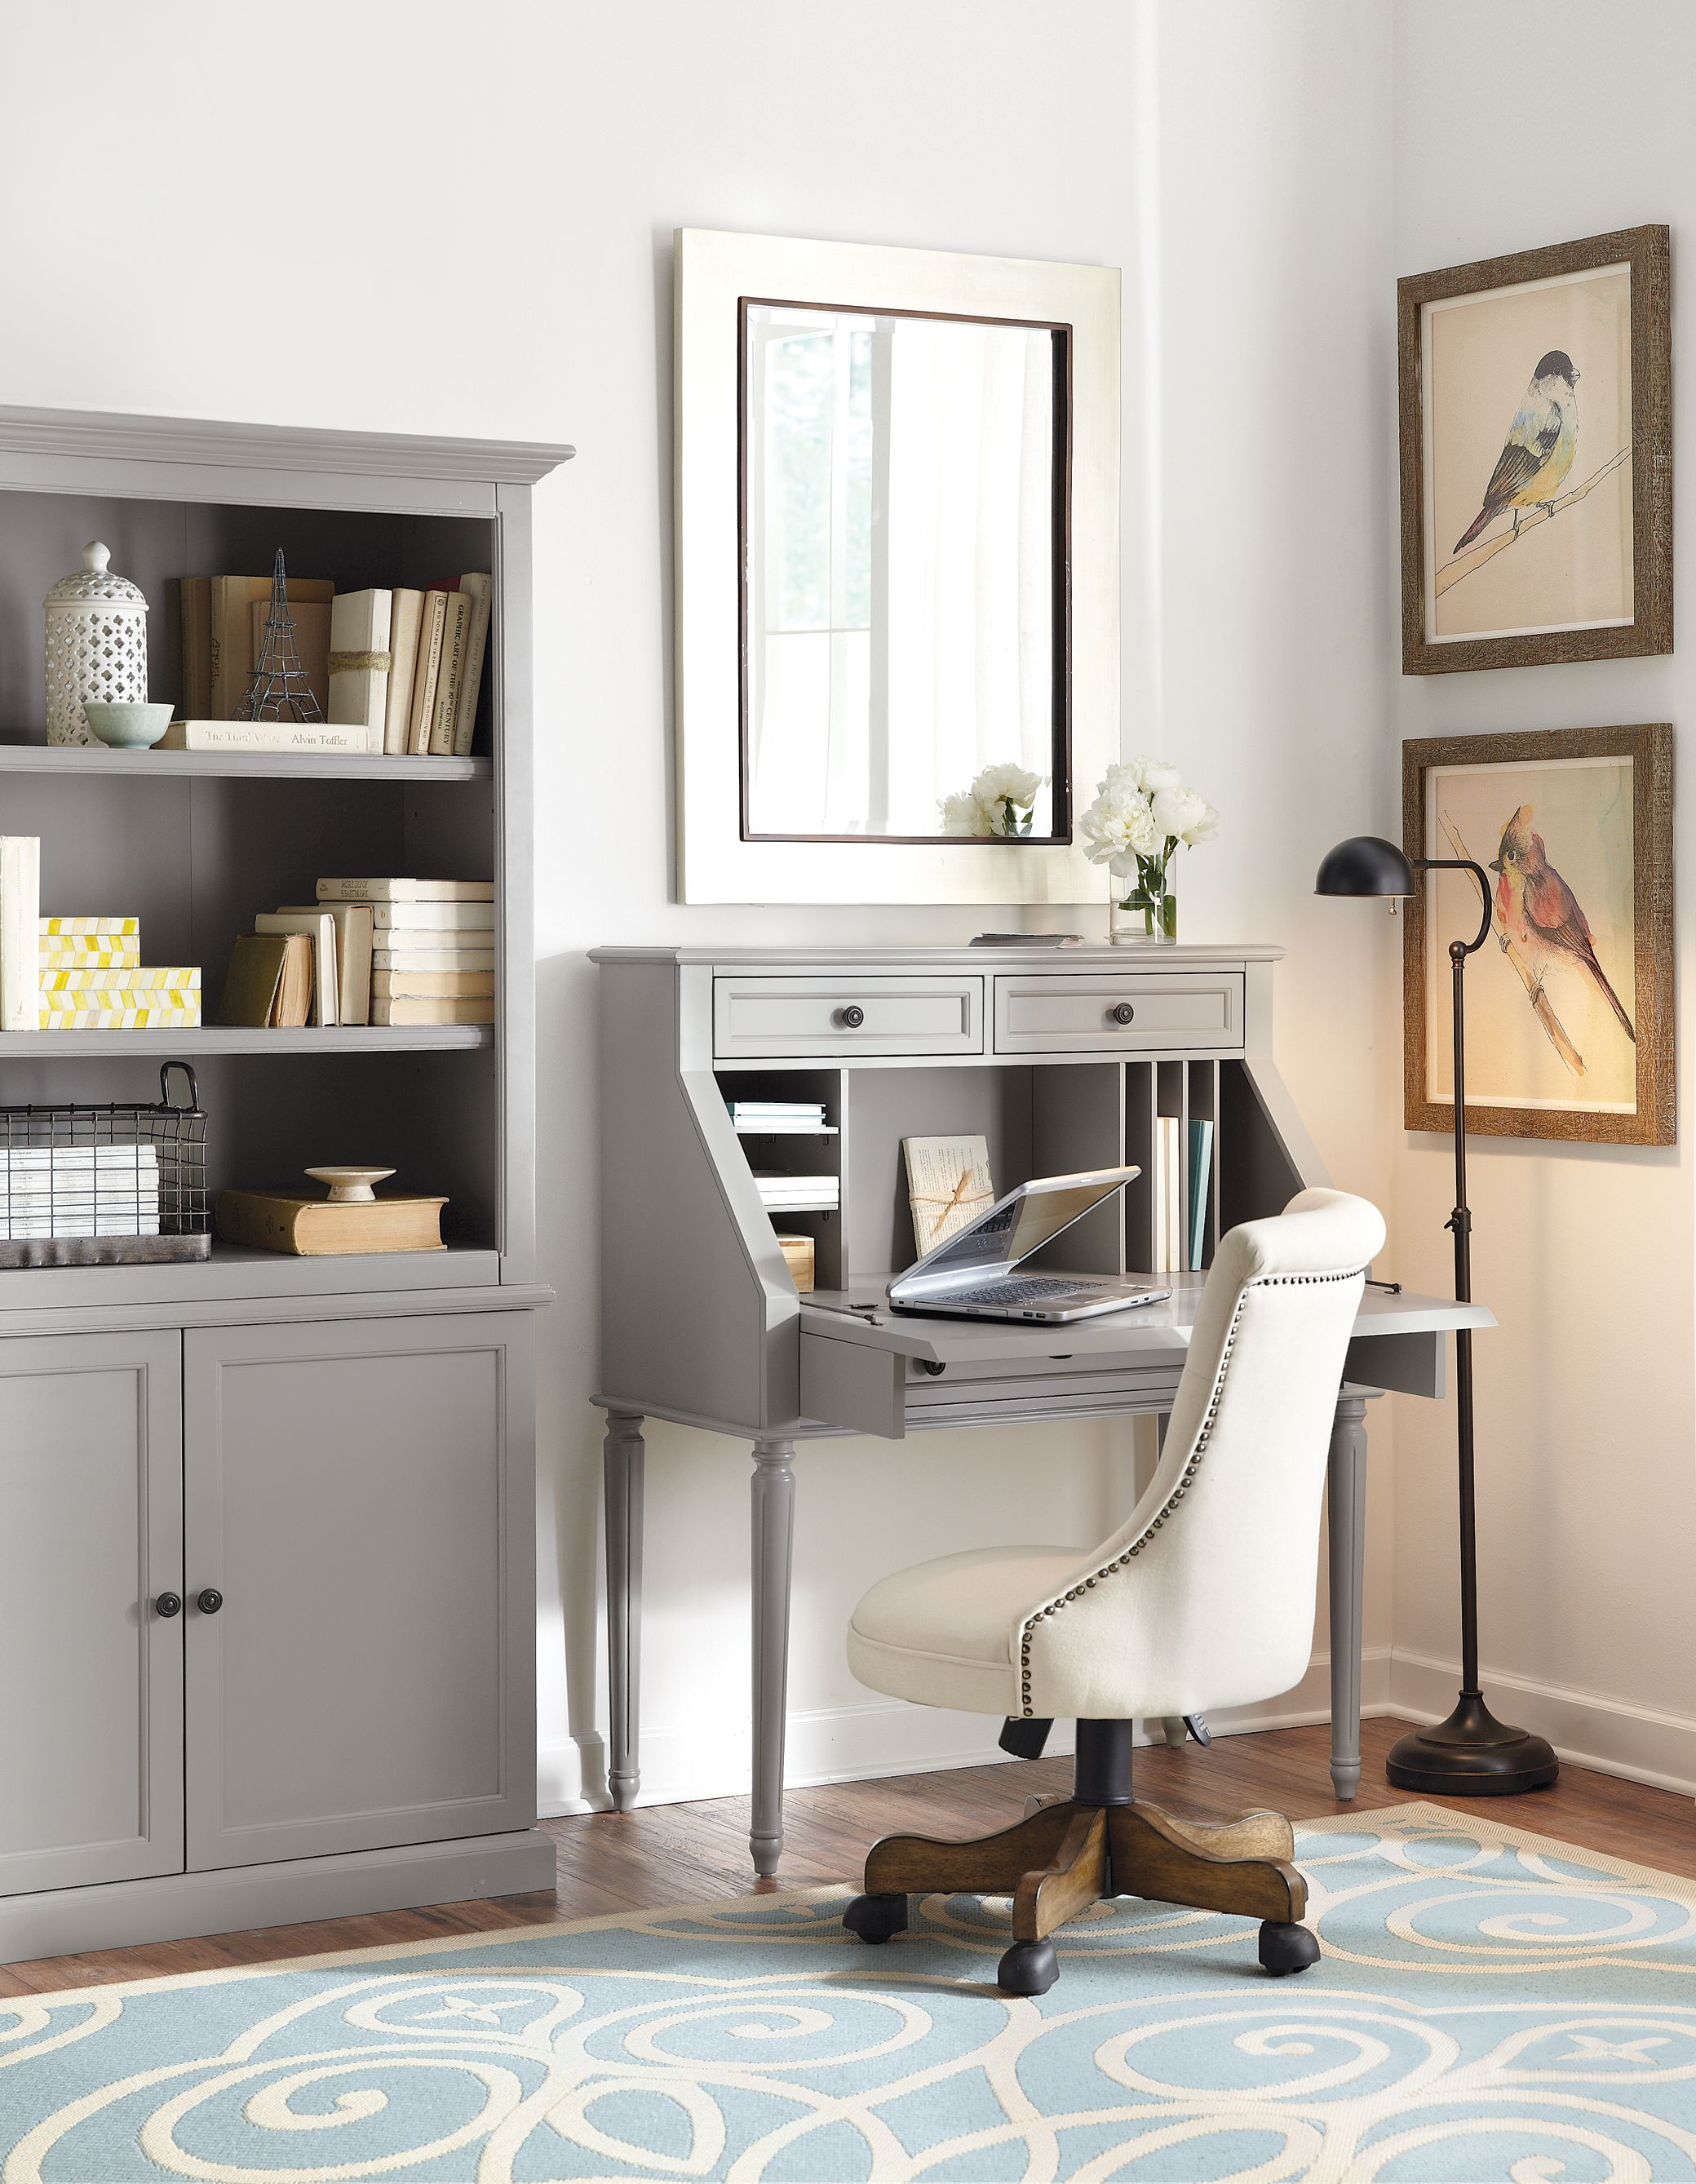 A Desk That Folds Up To Instantly Hide Any Clutter Homedecorators Com Reviveyourhome Small Secretary Desk Home Office Design Desks For Small Spaces